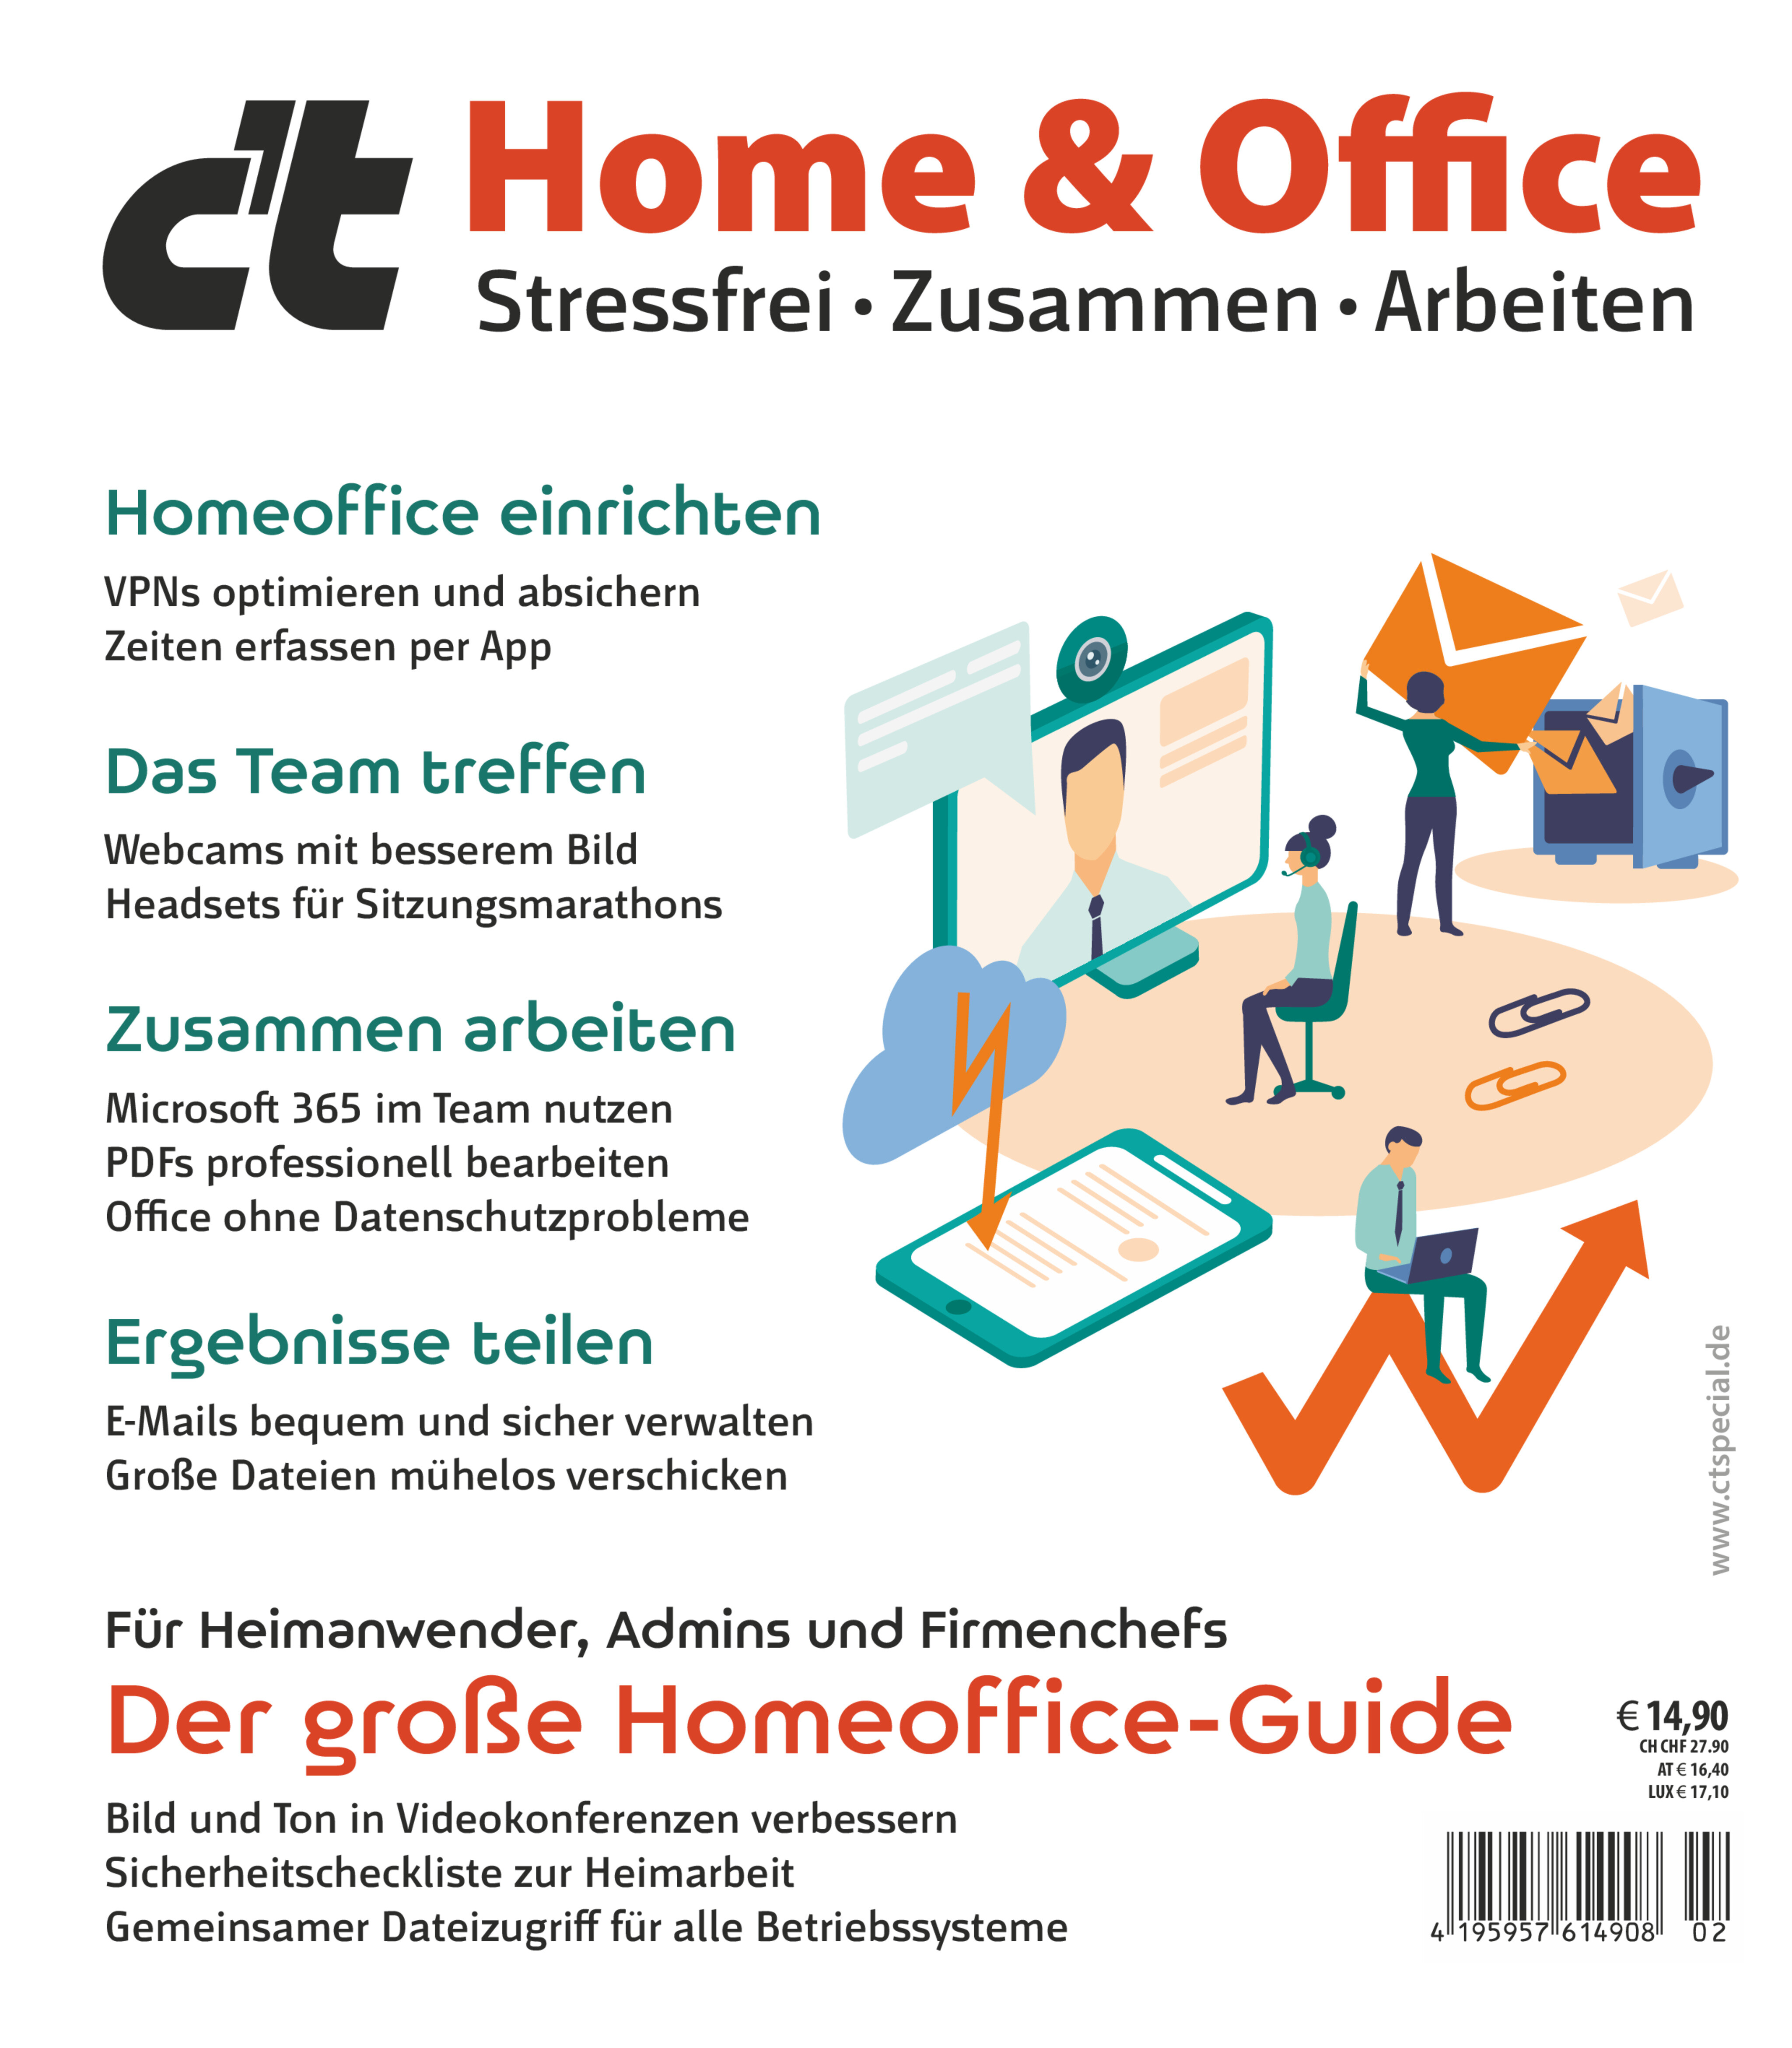 c't Home & Office 2021